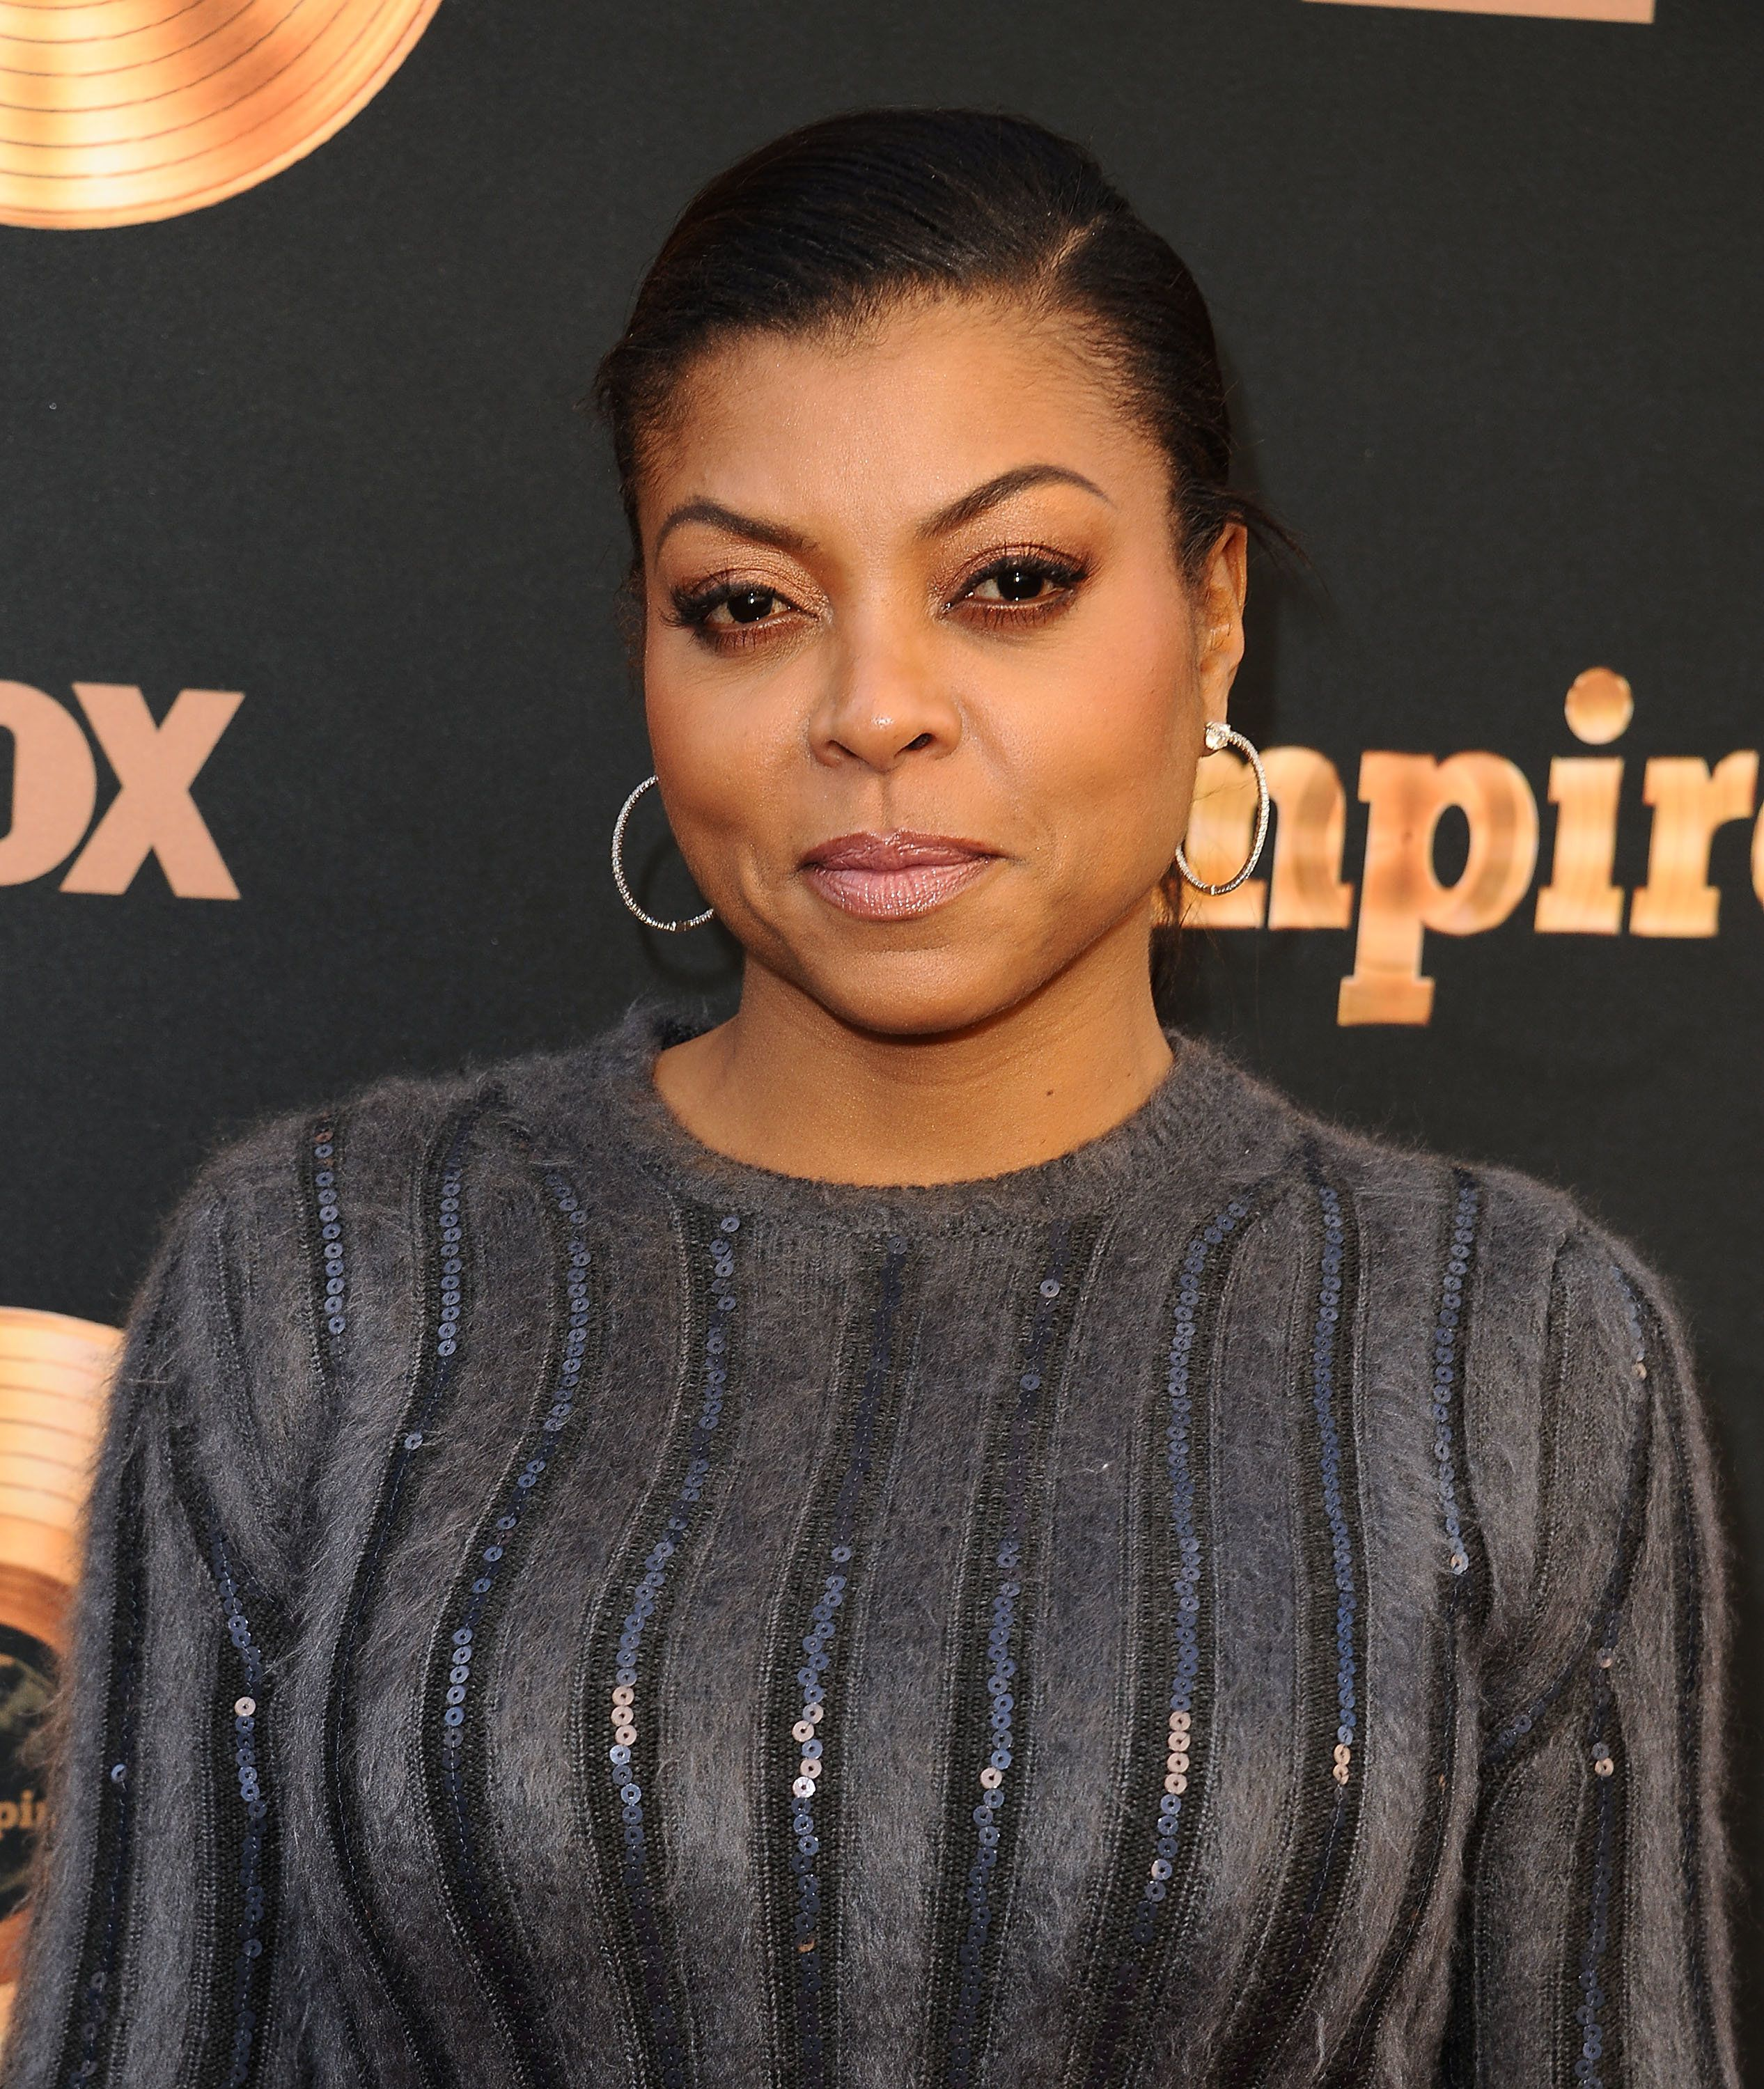 LOS ANGELES, CA - MAY 20:  Actress Taraji P. Henson attends the 'Empire' FYC ATAS event at Zanuck Theater on May 20, 2016 in Los Angeles, California.  (Photo by Jason LaVeris/FilmMagic)